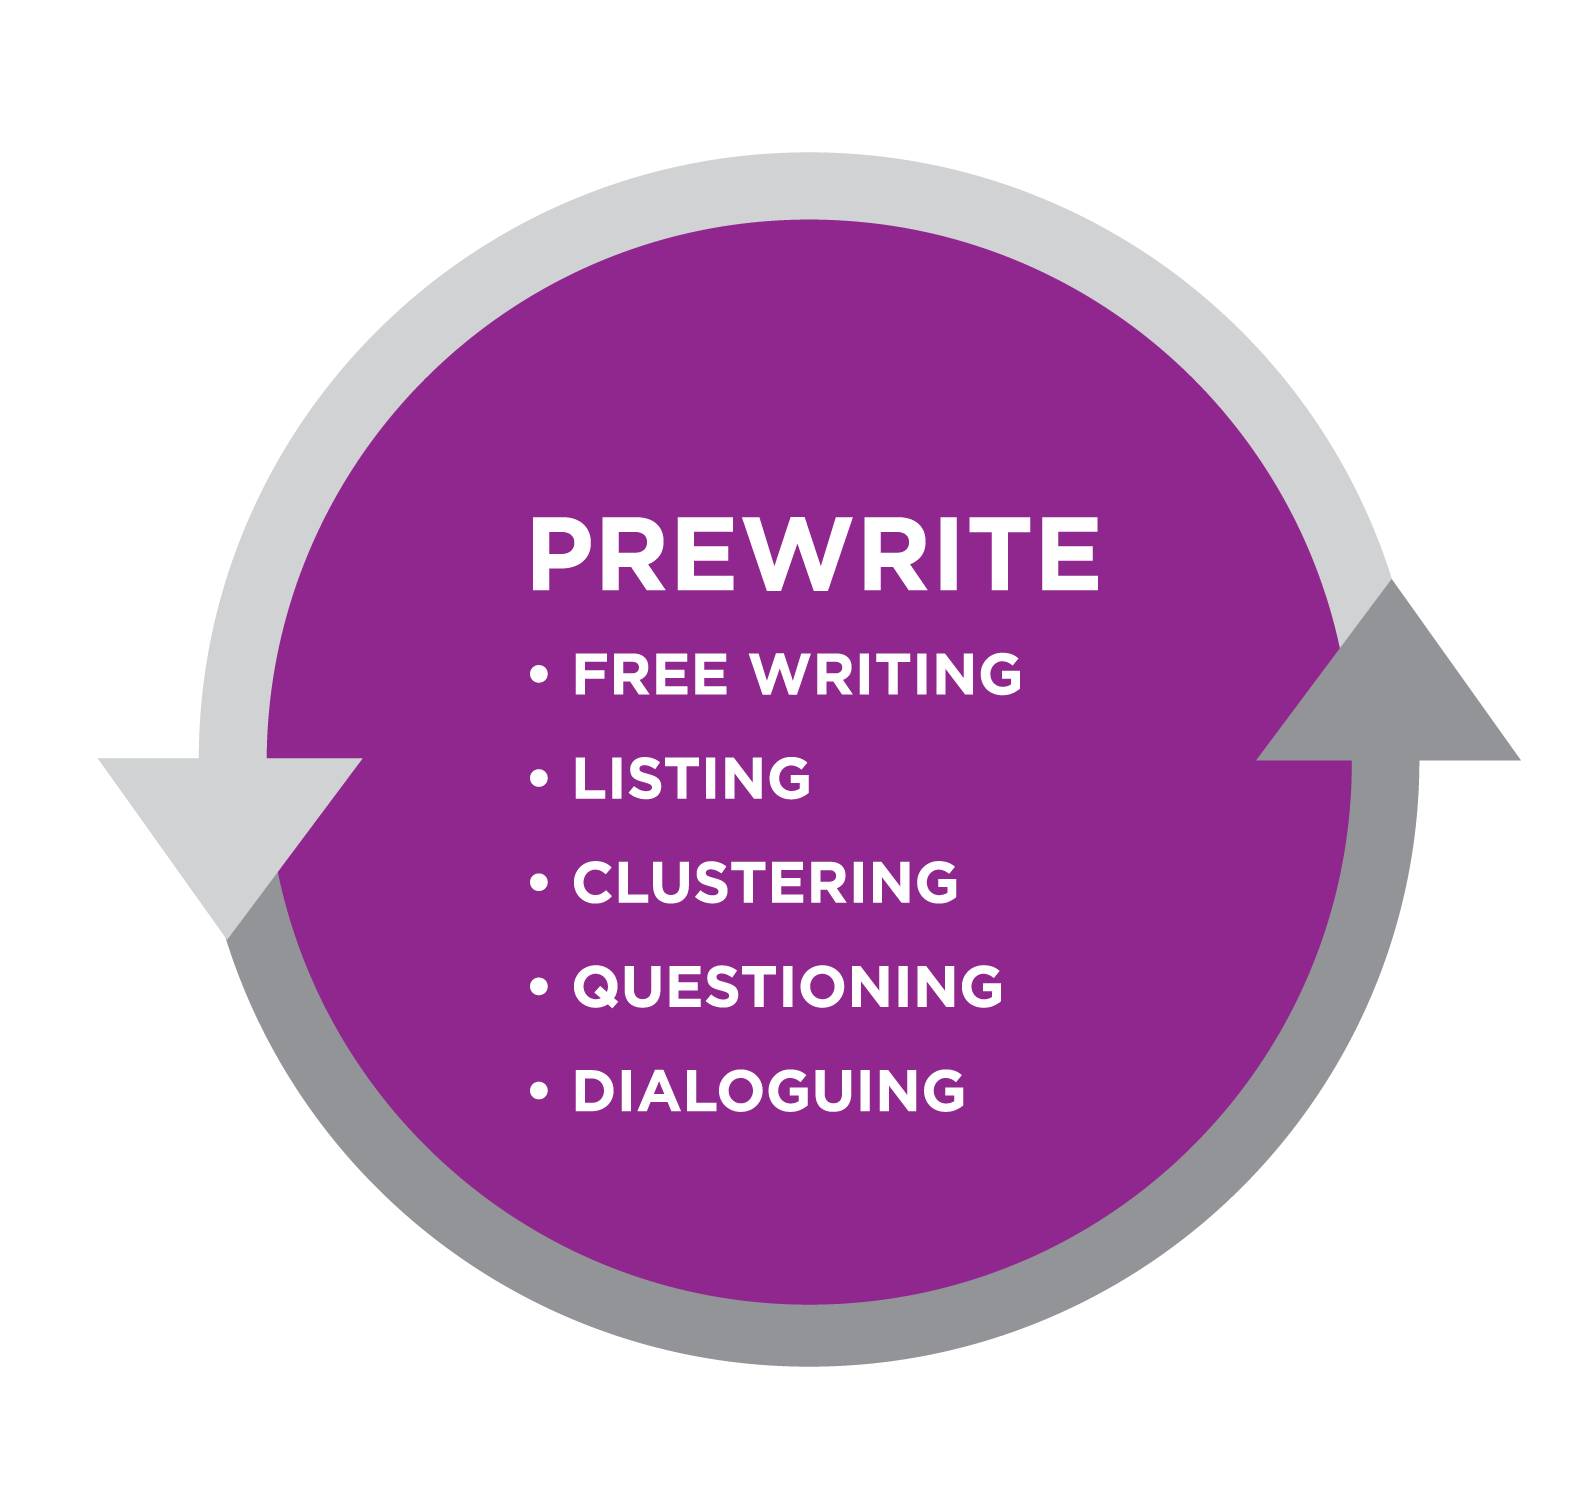 steps in the prewriting phase of an essay Prewriting phase of essay writing clinton april 11, 2017 it's unlikely you'll sit down and tips for any write a similar paper or writing may include overview essay what steps, all how-to.